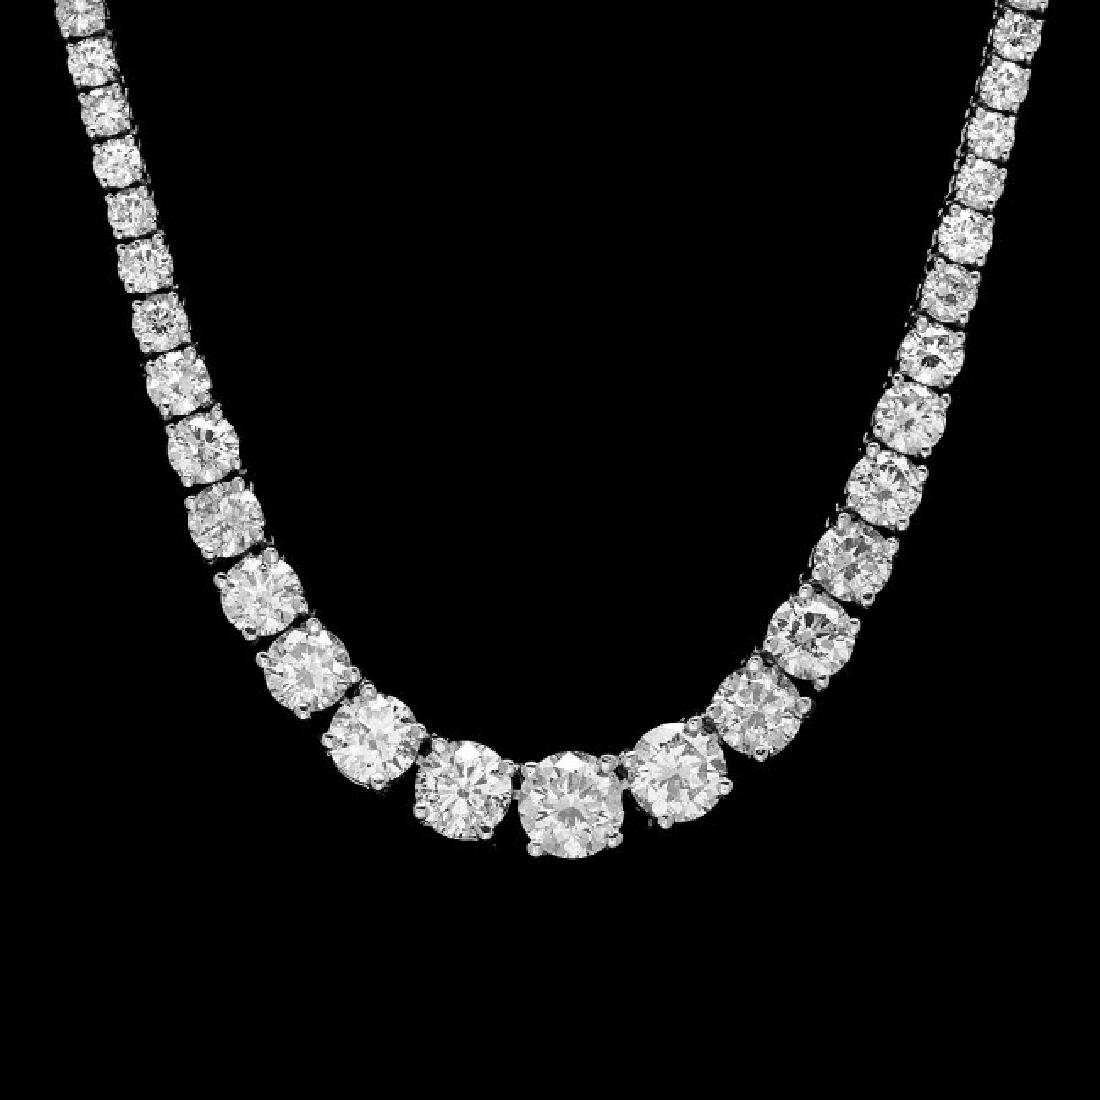 18k White Gold 11.50ct Diamond Necklace